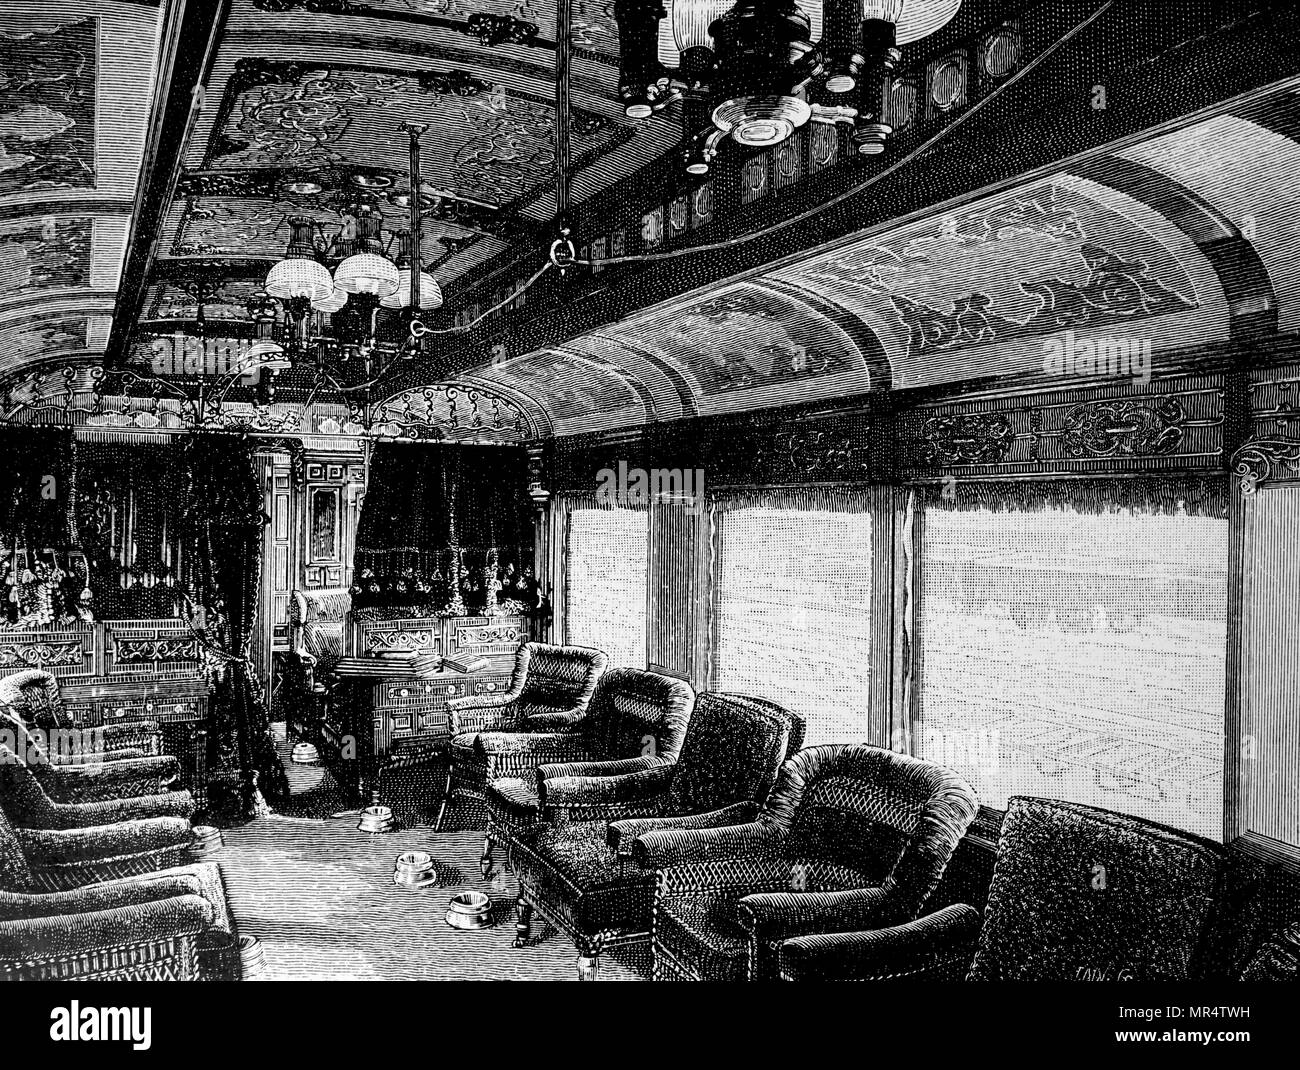 Engraving depicting the interior of a Wagner parlour car. Dated 19th century - Stock Image